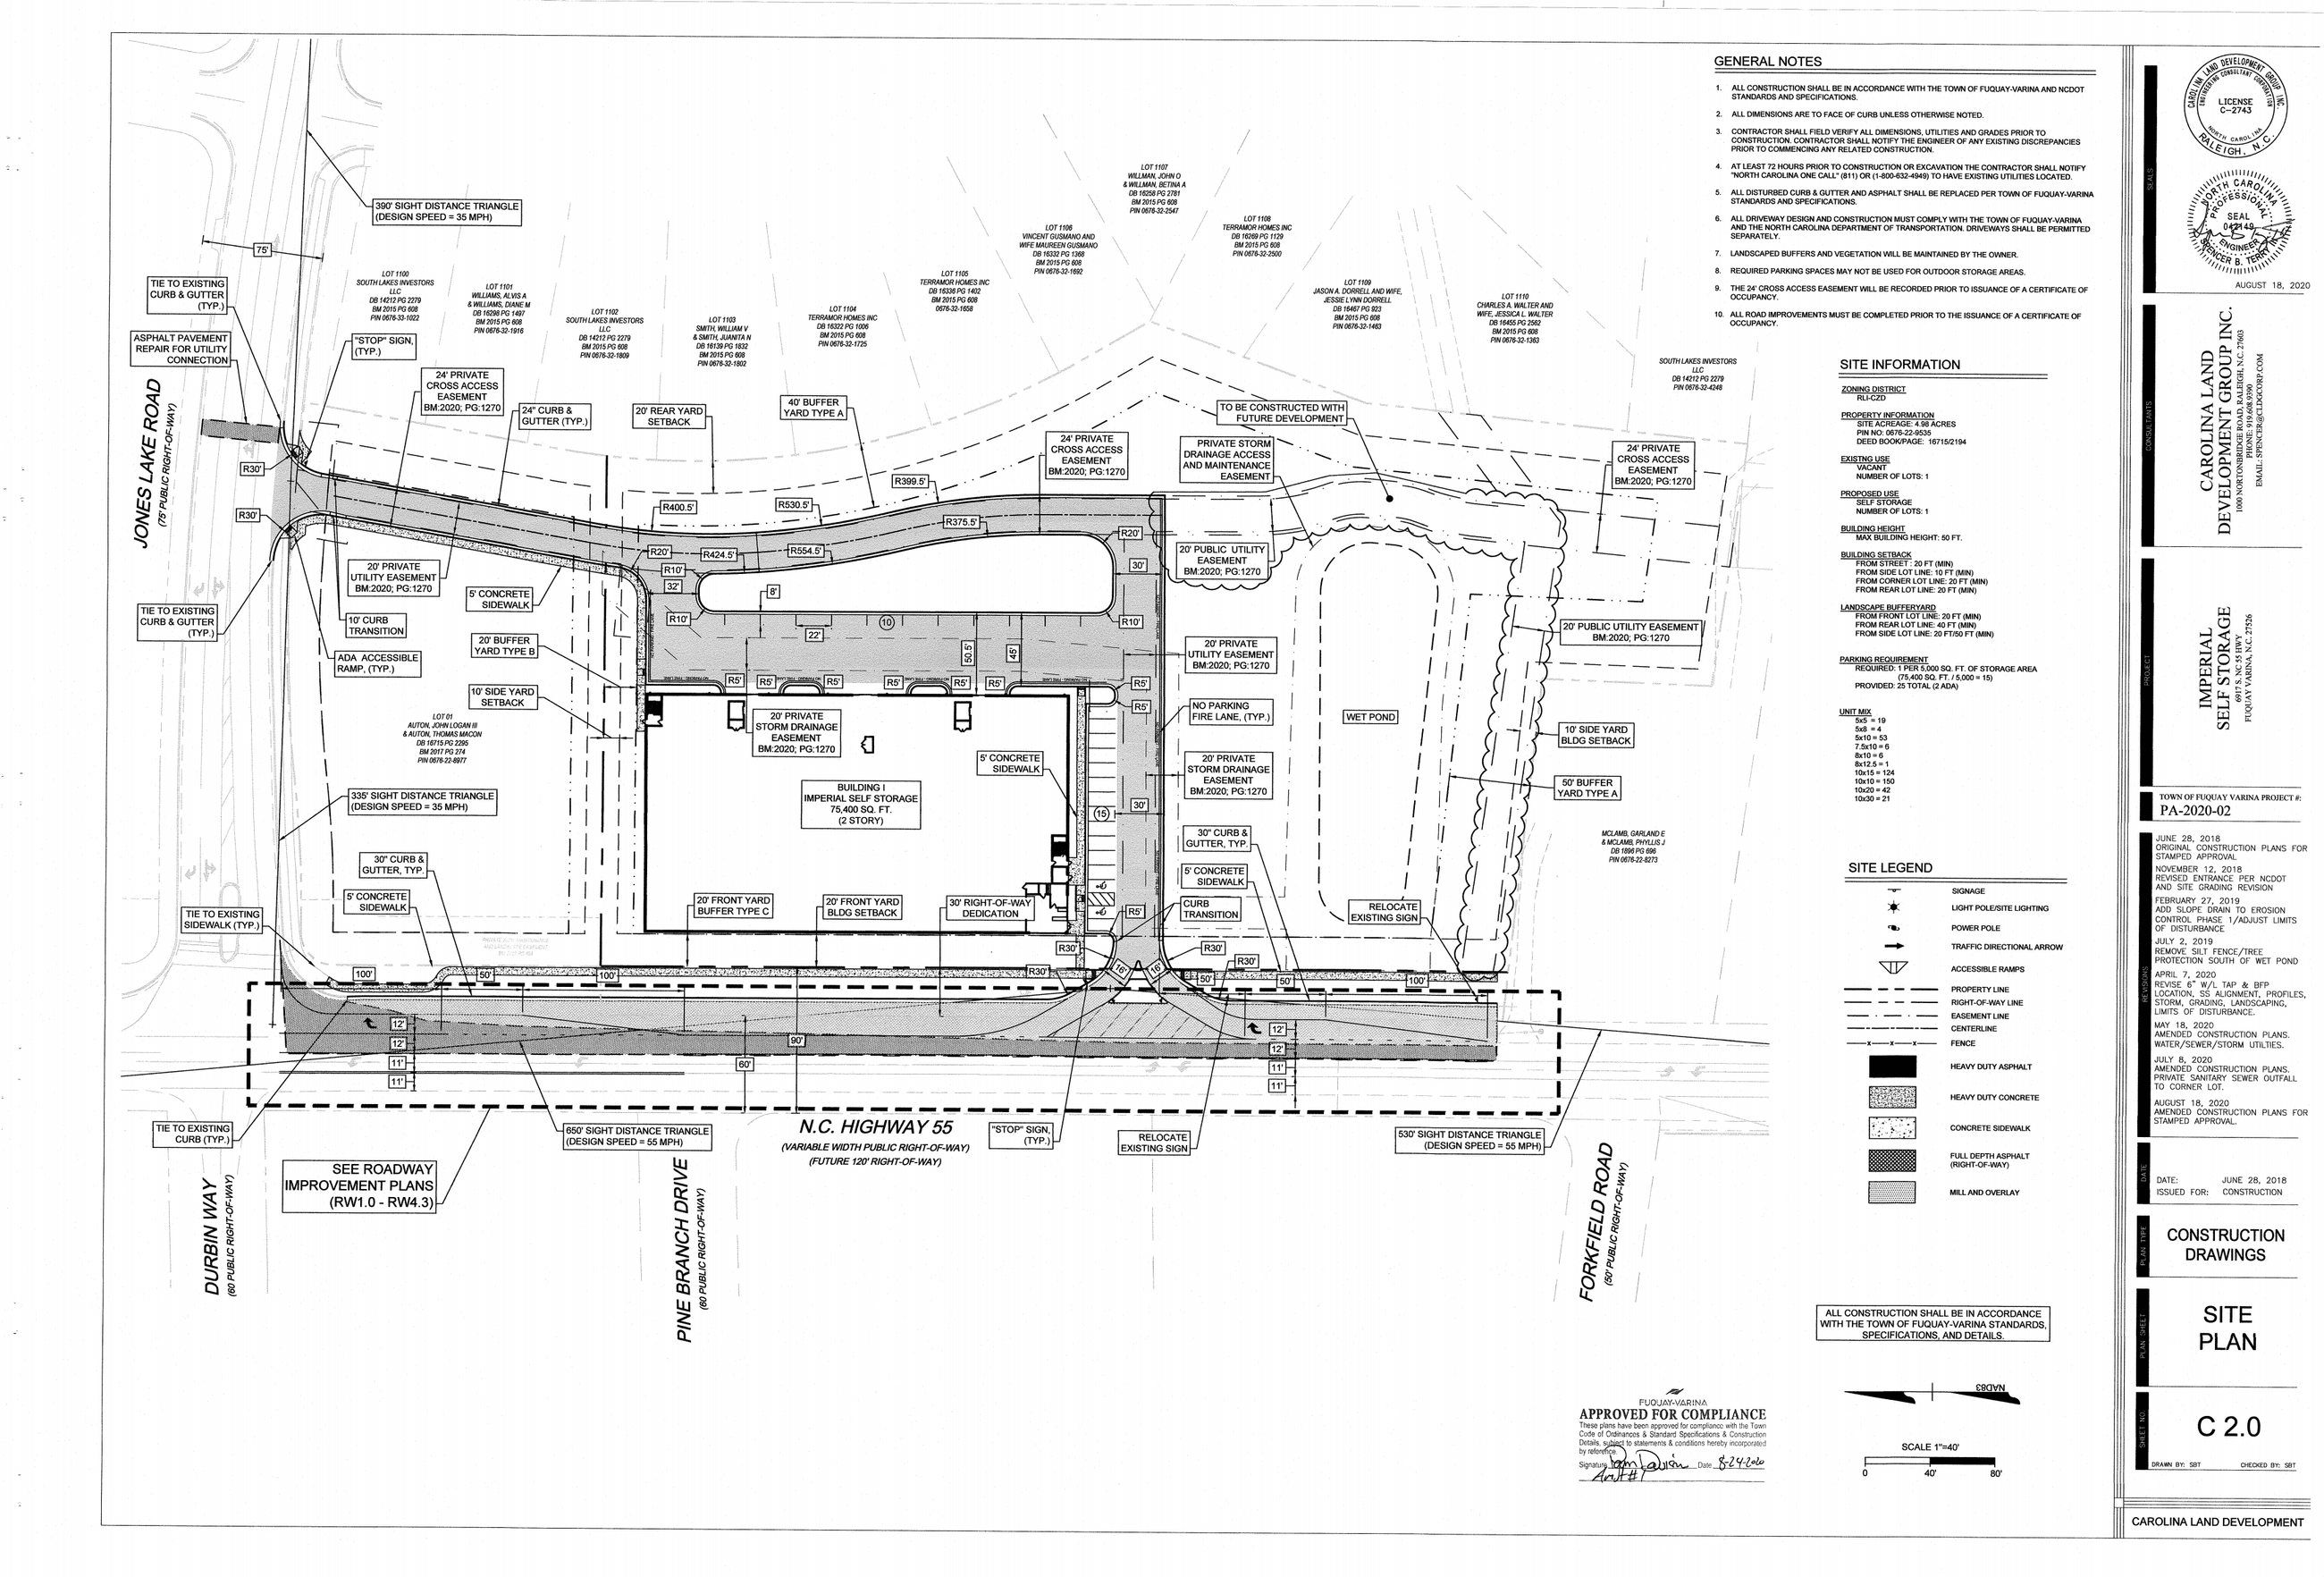 Imperial Self Storage Amdt 1 - Site Plan